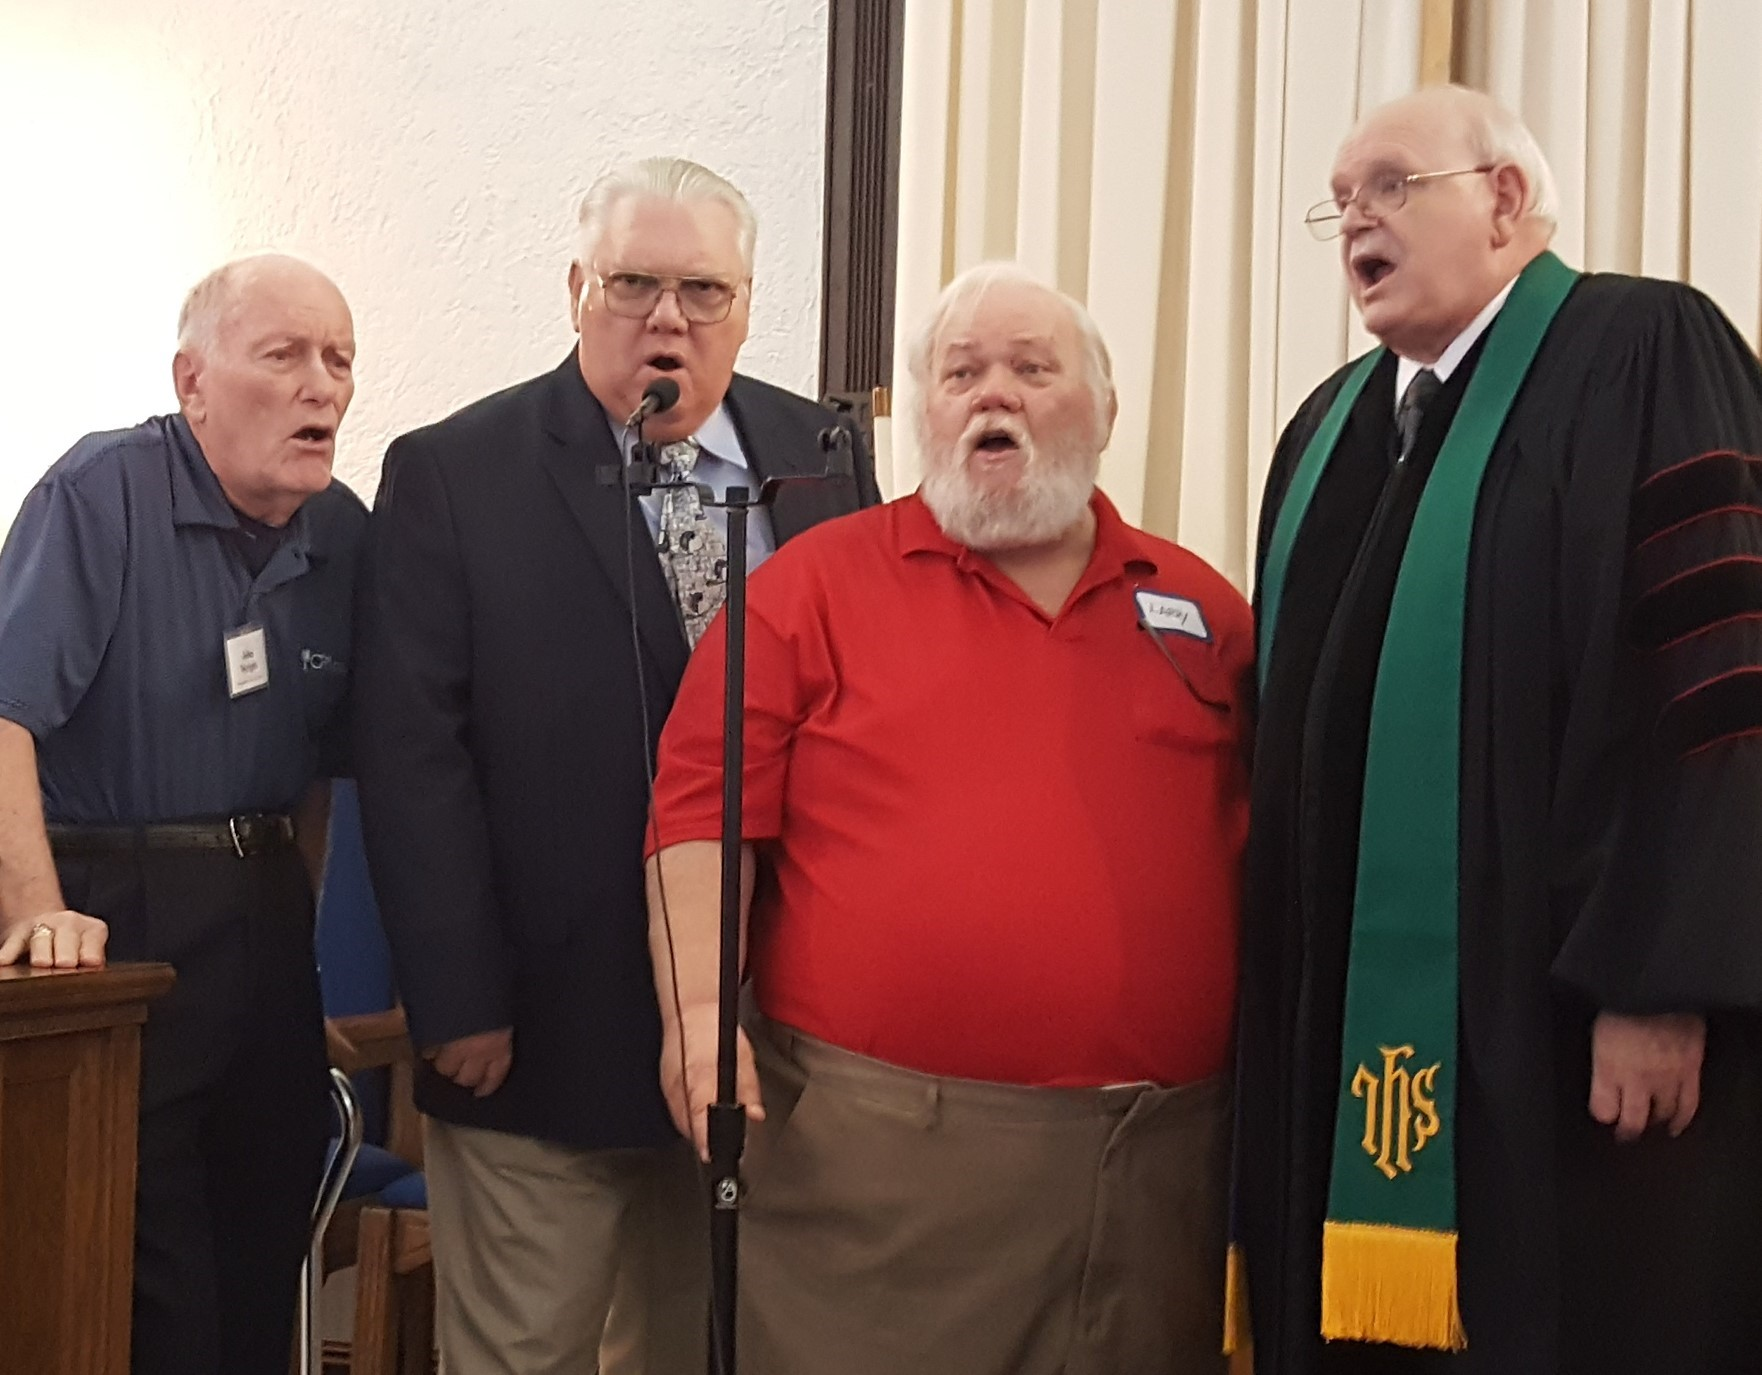 Weirsdale Pastor Laseter